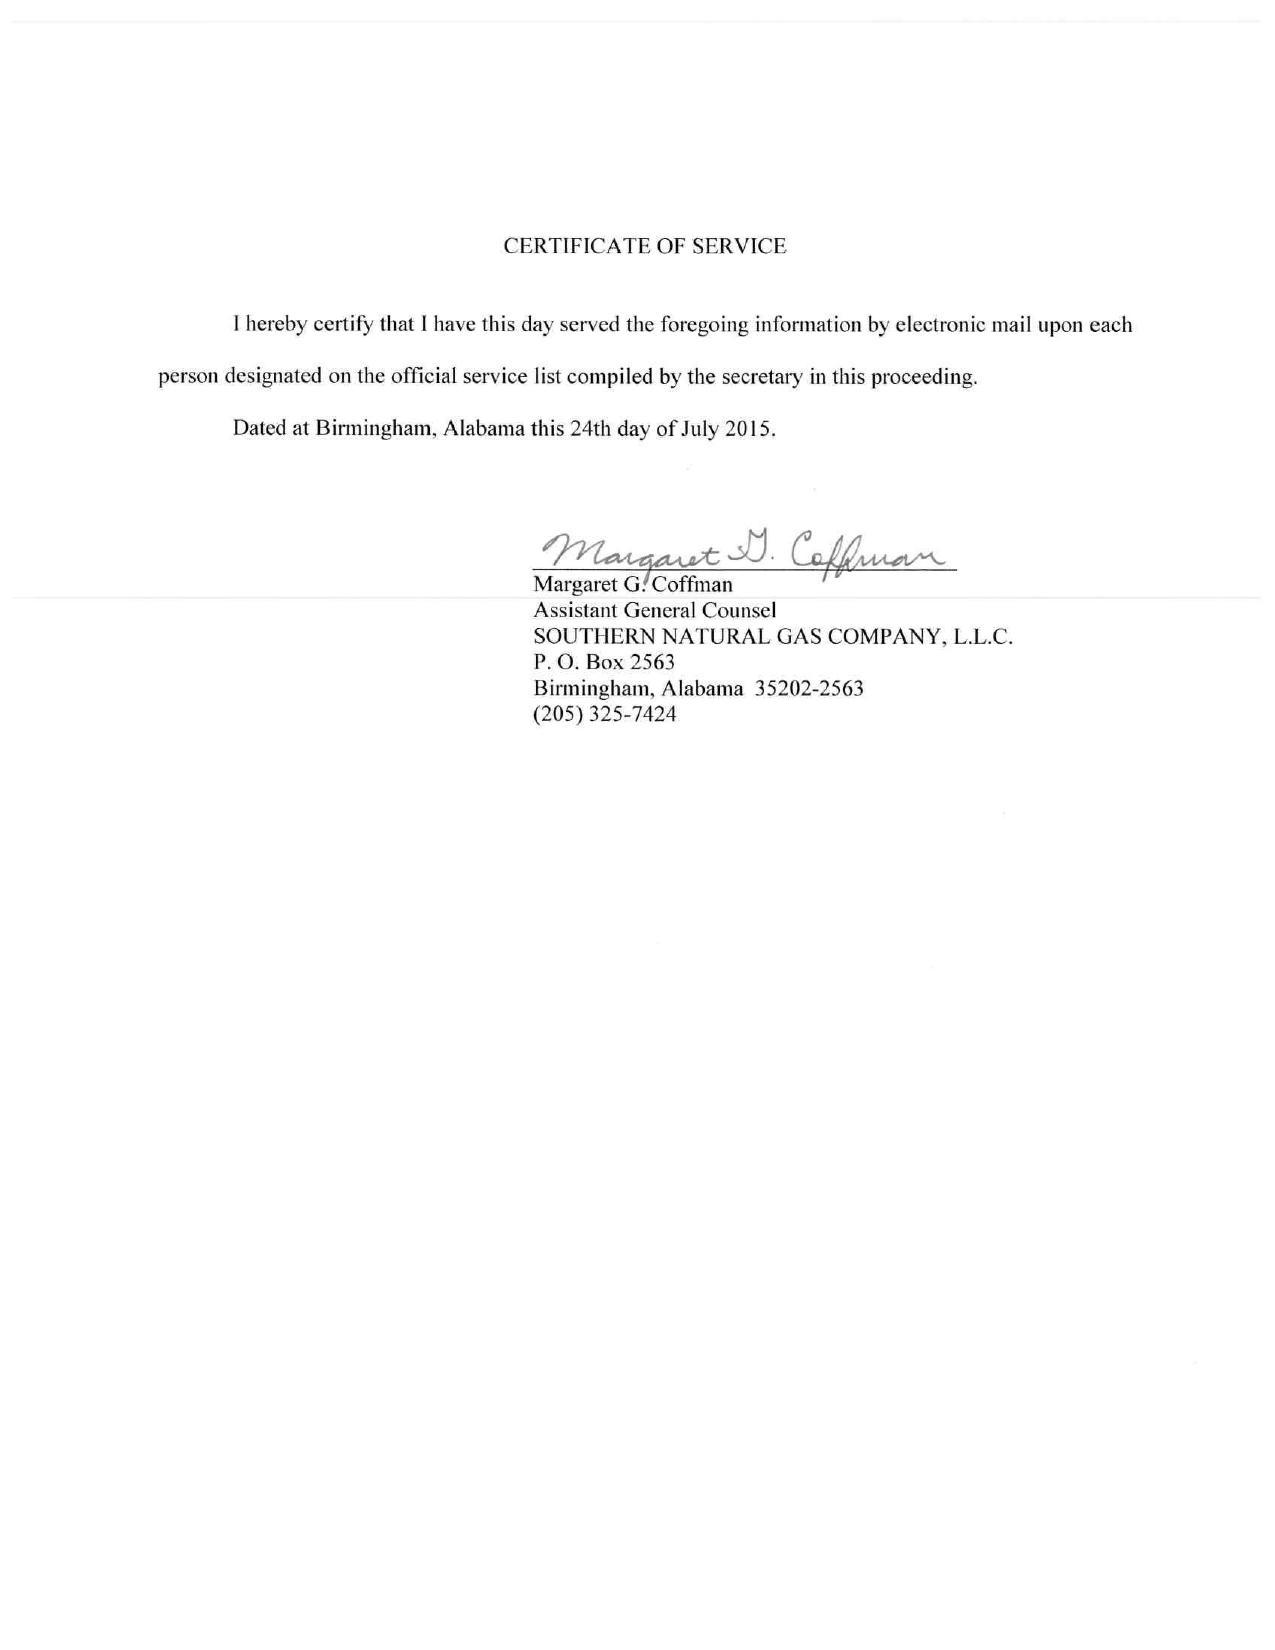 1275x1650 Certificate of Service, in Sabal Trail is proposiong an excessive number of crossings, by Southern Natural Gas, for SpectraBusters.org, 24 July 2015